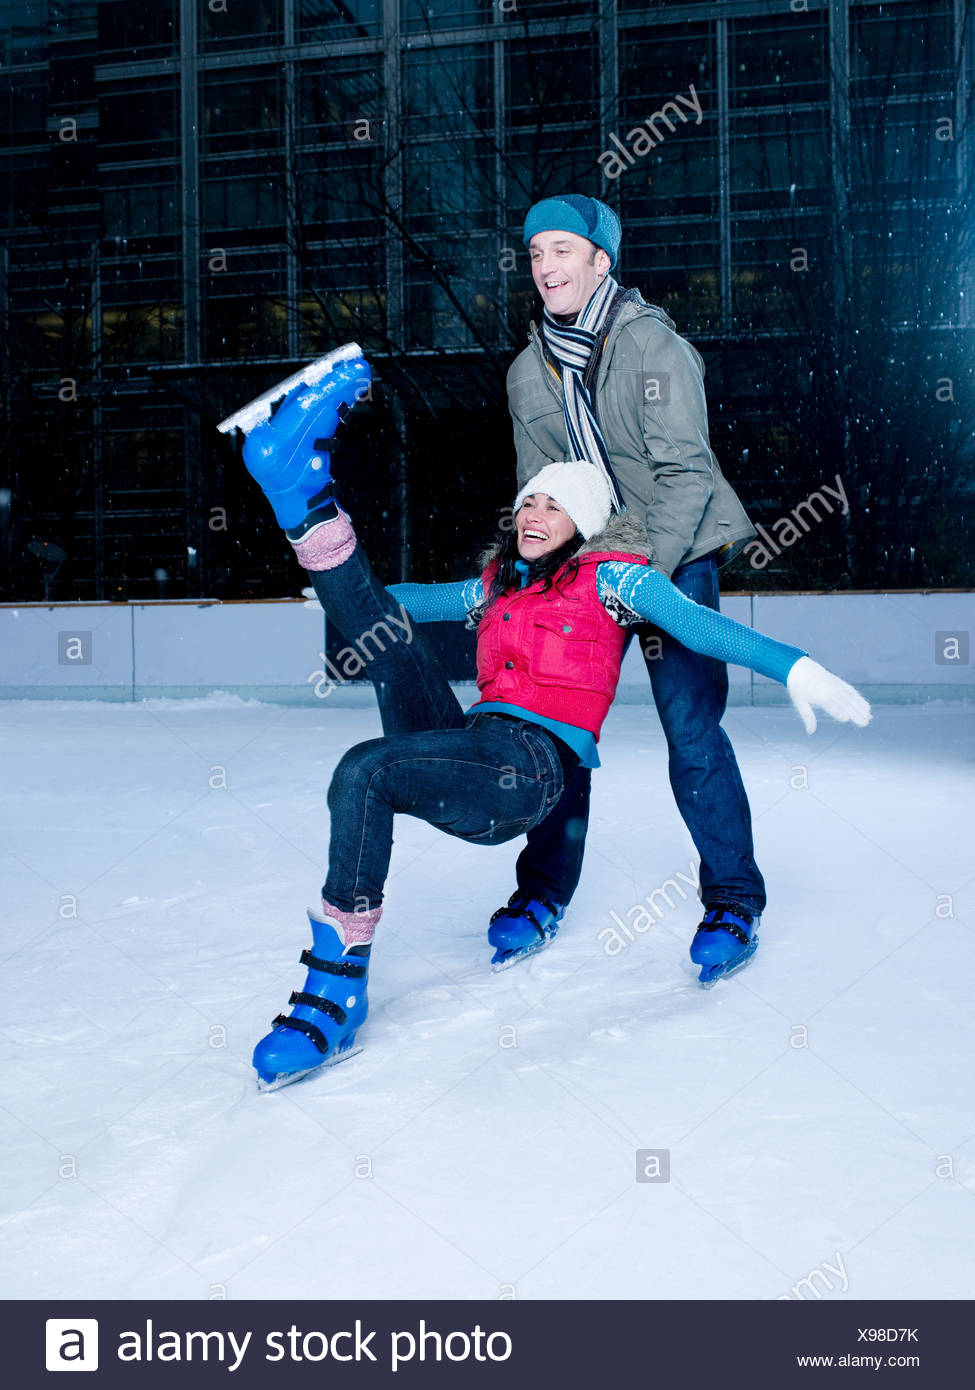 Man supporting woman as she falls while iceskating - Stock Image